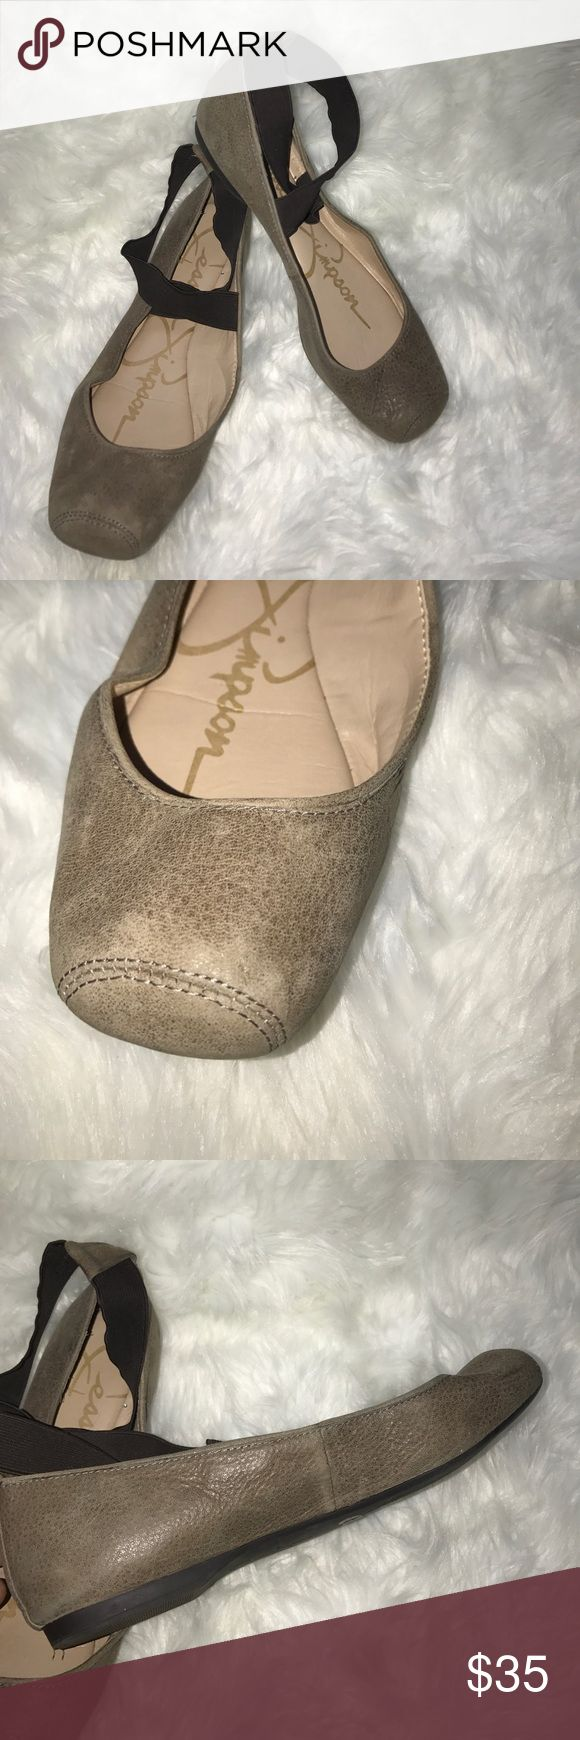 Jessica Simpson Ballet Flats Please note the signs of wear and that these are second hand Flats. Super cute taupe and brown Flats. Made to look like real ballet slippers with elastic ankle straps. They are a size 8. So much life left I just never wear them. Jessica Simpson Shoes Flats & Loafers